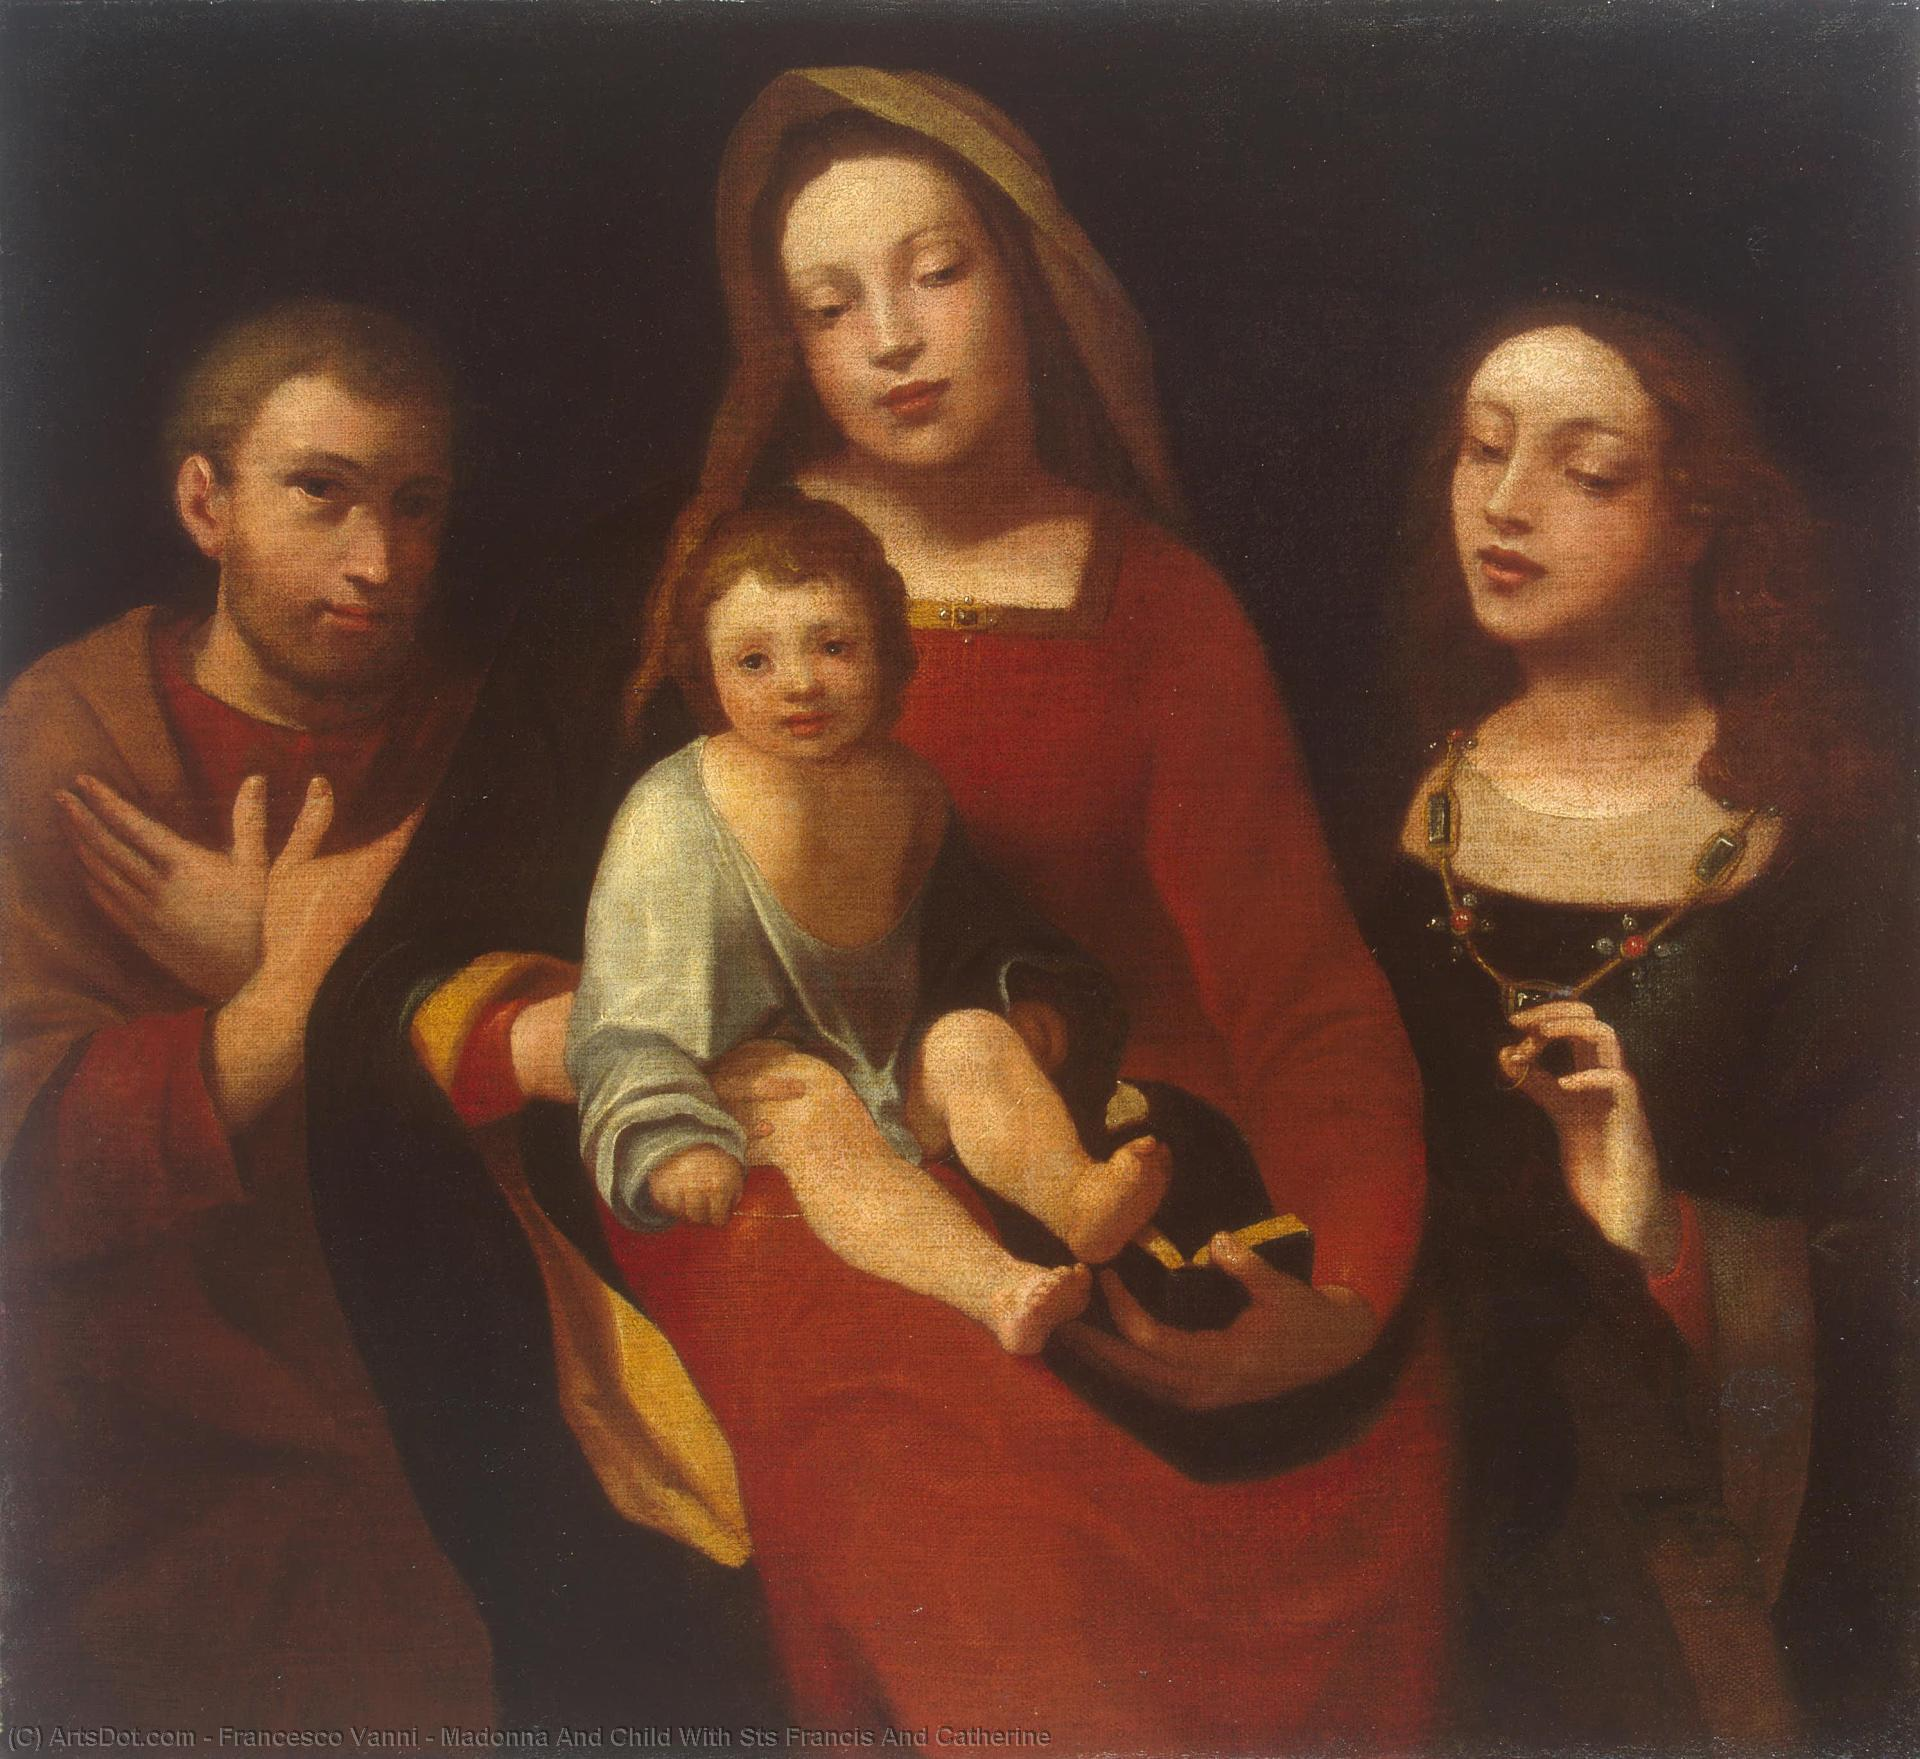 Wikioo.org - The Encyclopedia of Fine Arts - Painting, Artwork by Francesco Vanni - Madonna And Child With Sts Francis And Catherine